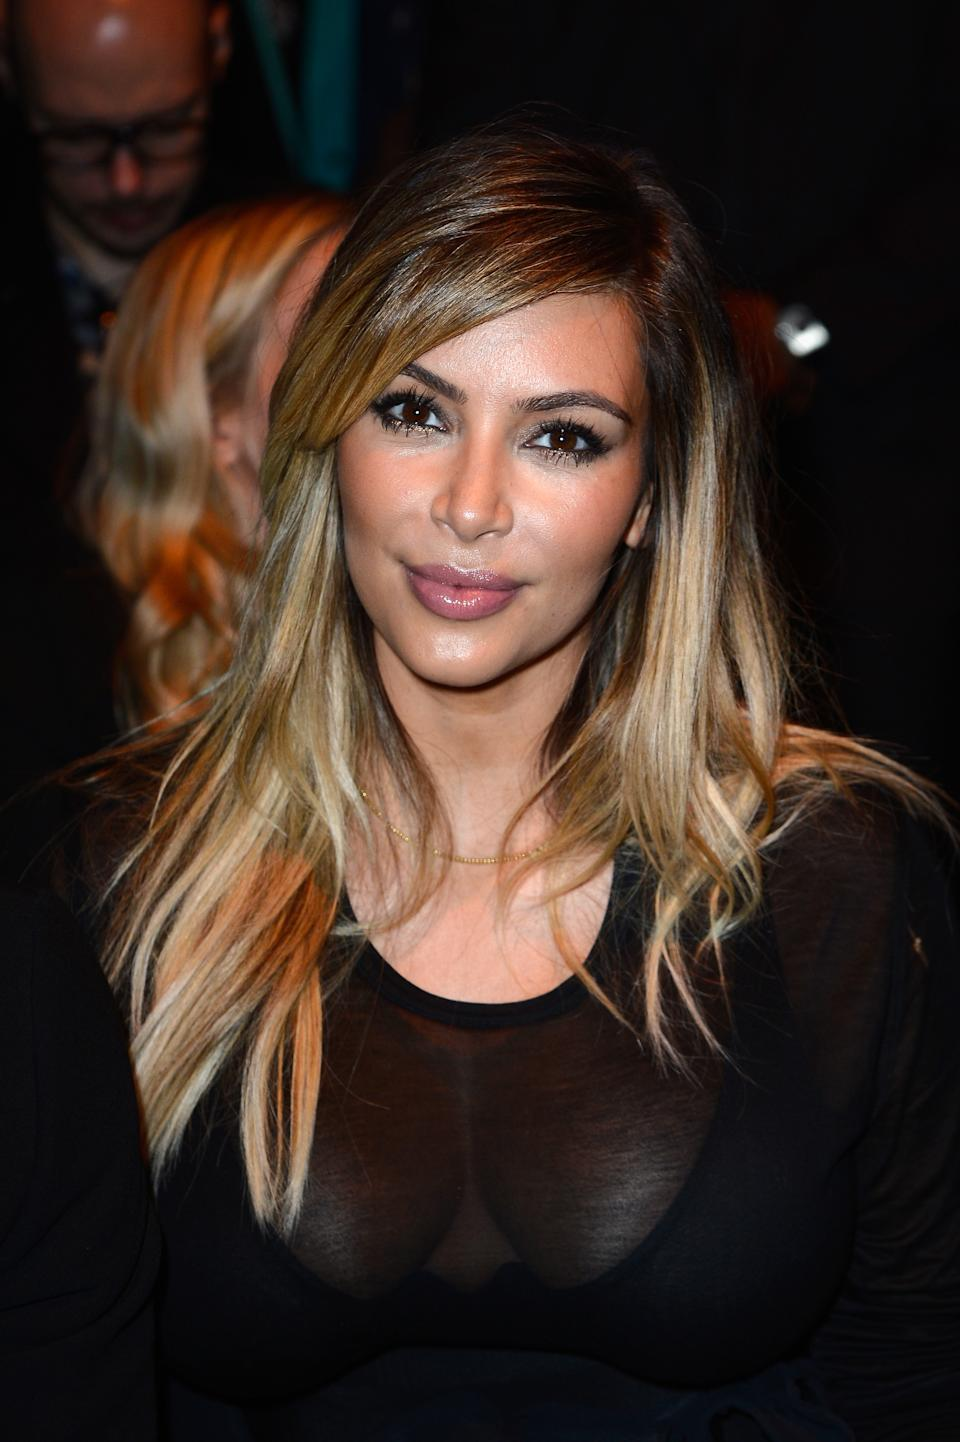 Kim Kardashian auf der Paris Fashion Week. (Bild: Getty Images)